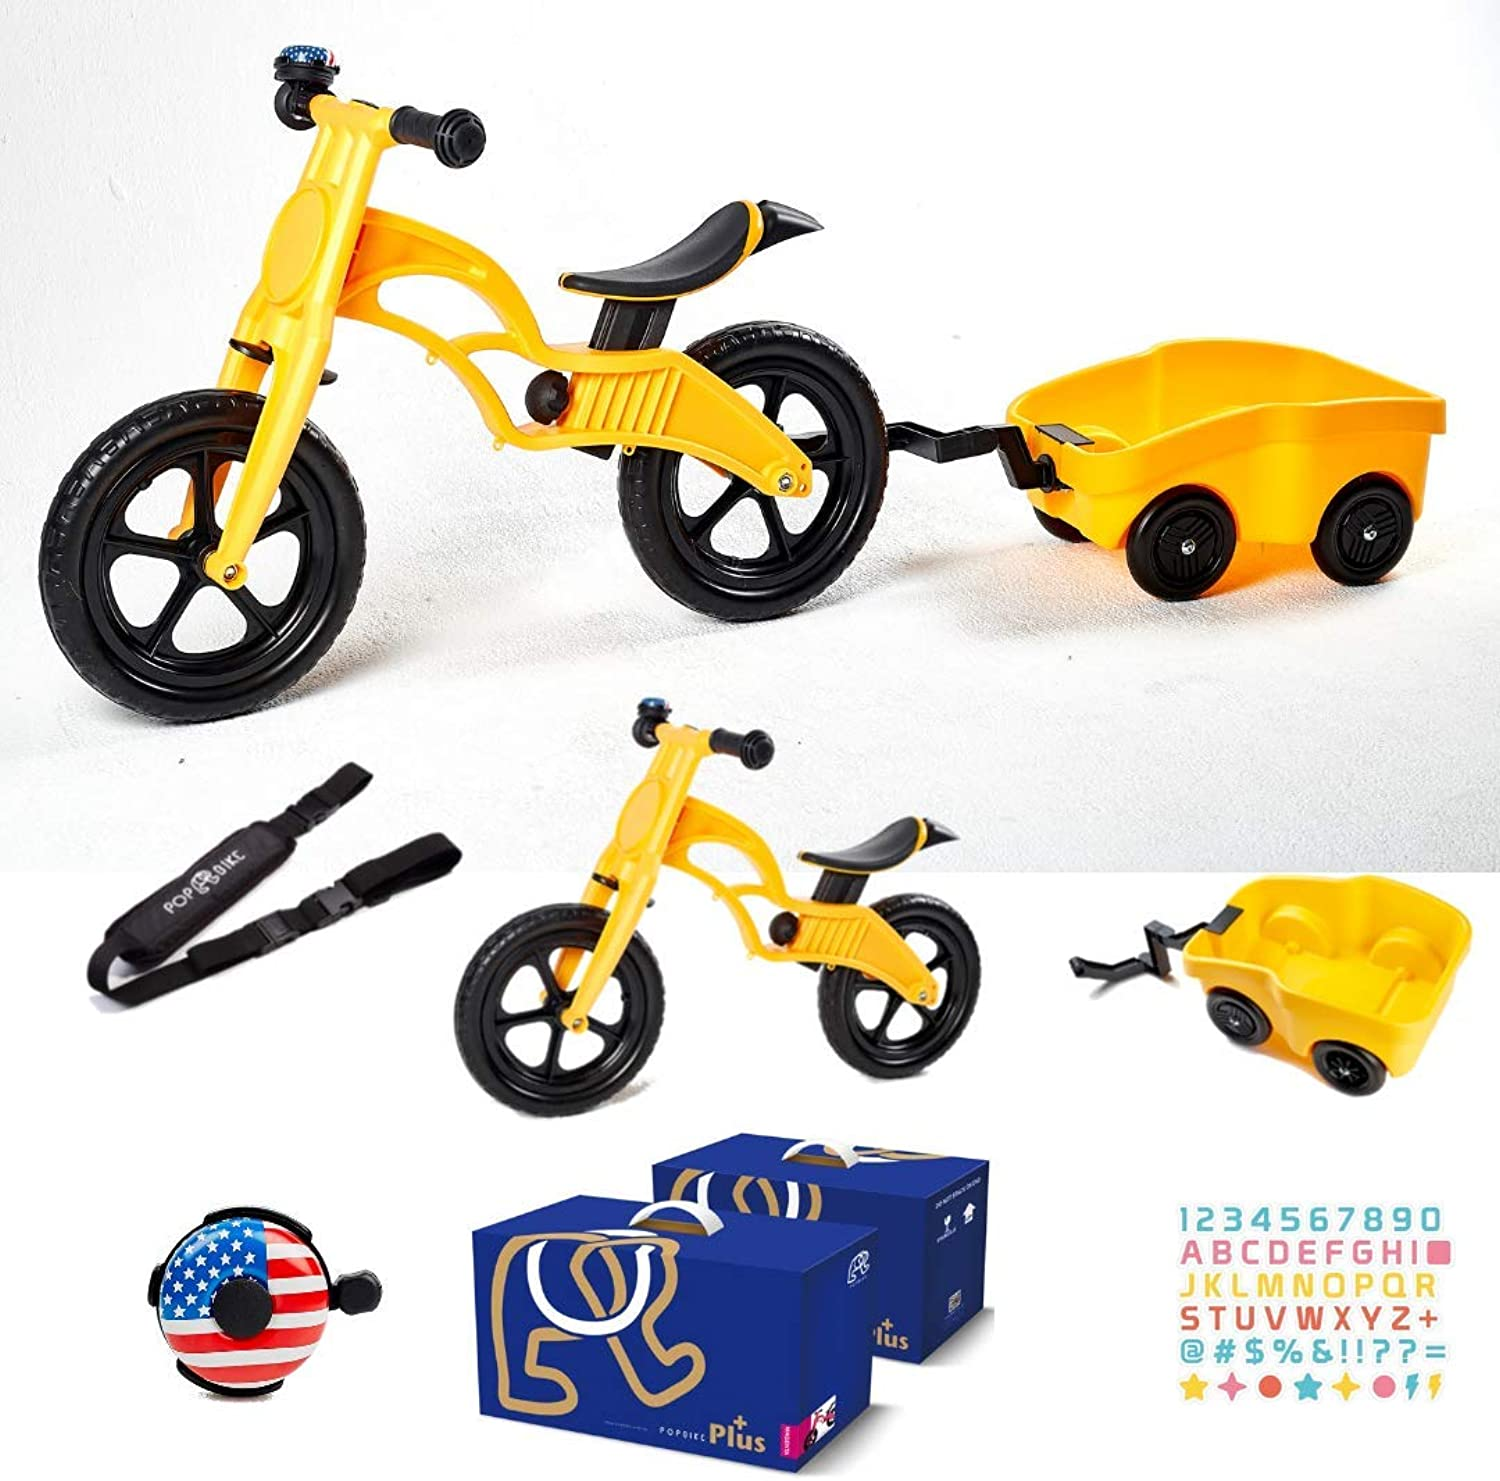 POPBIKE 2-in-1 Balance Bike with Trailer Wagon for Baby & Toddler. Use for Kids from 18M-5 Years Old. Great First no Pedal Glider Before Real Bicycle or Strider Sport. Free Bell, Sticker, Carry Strap